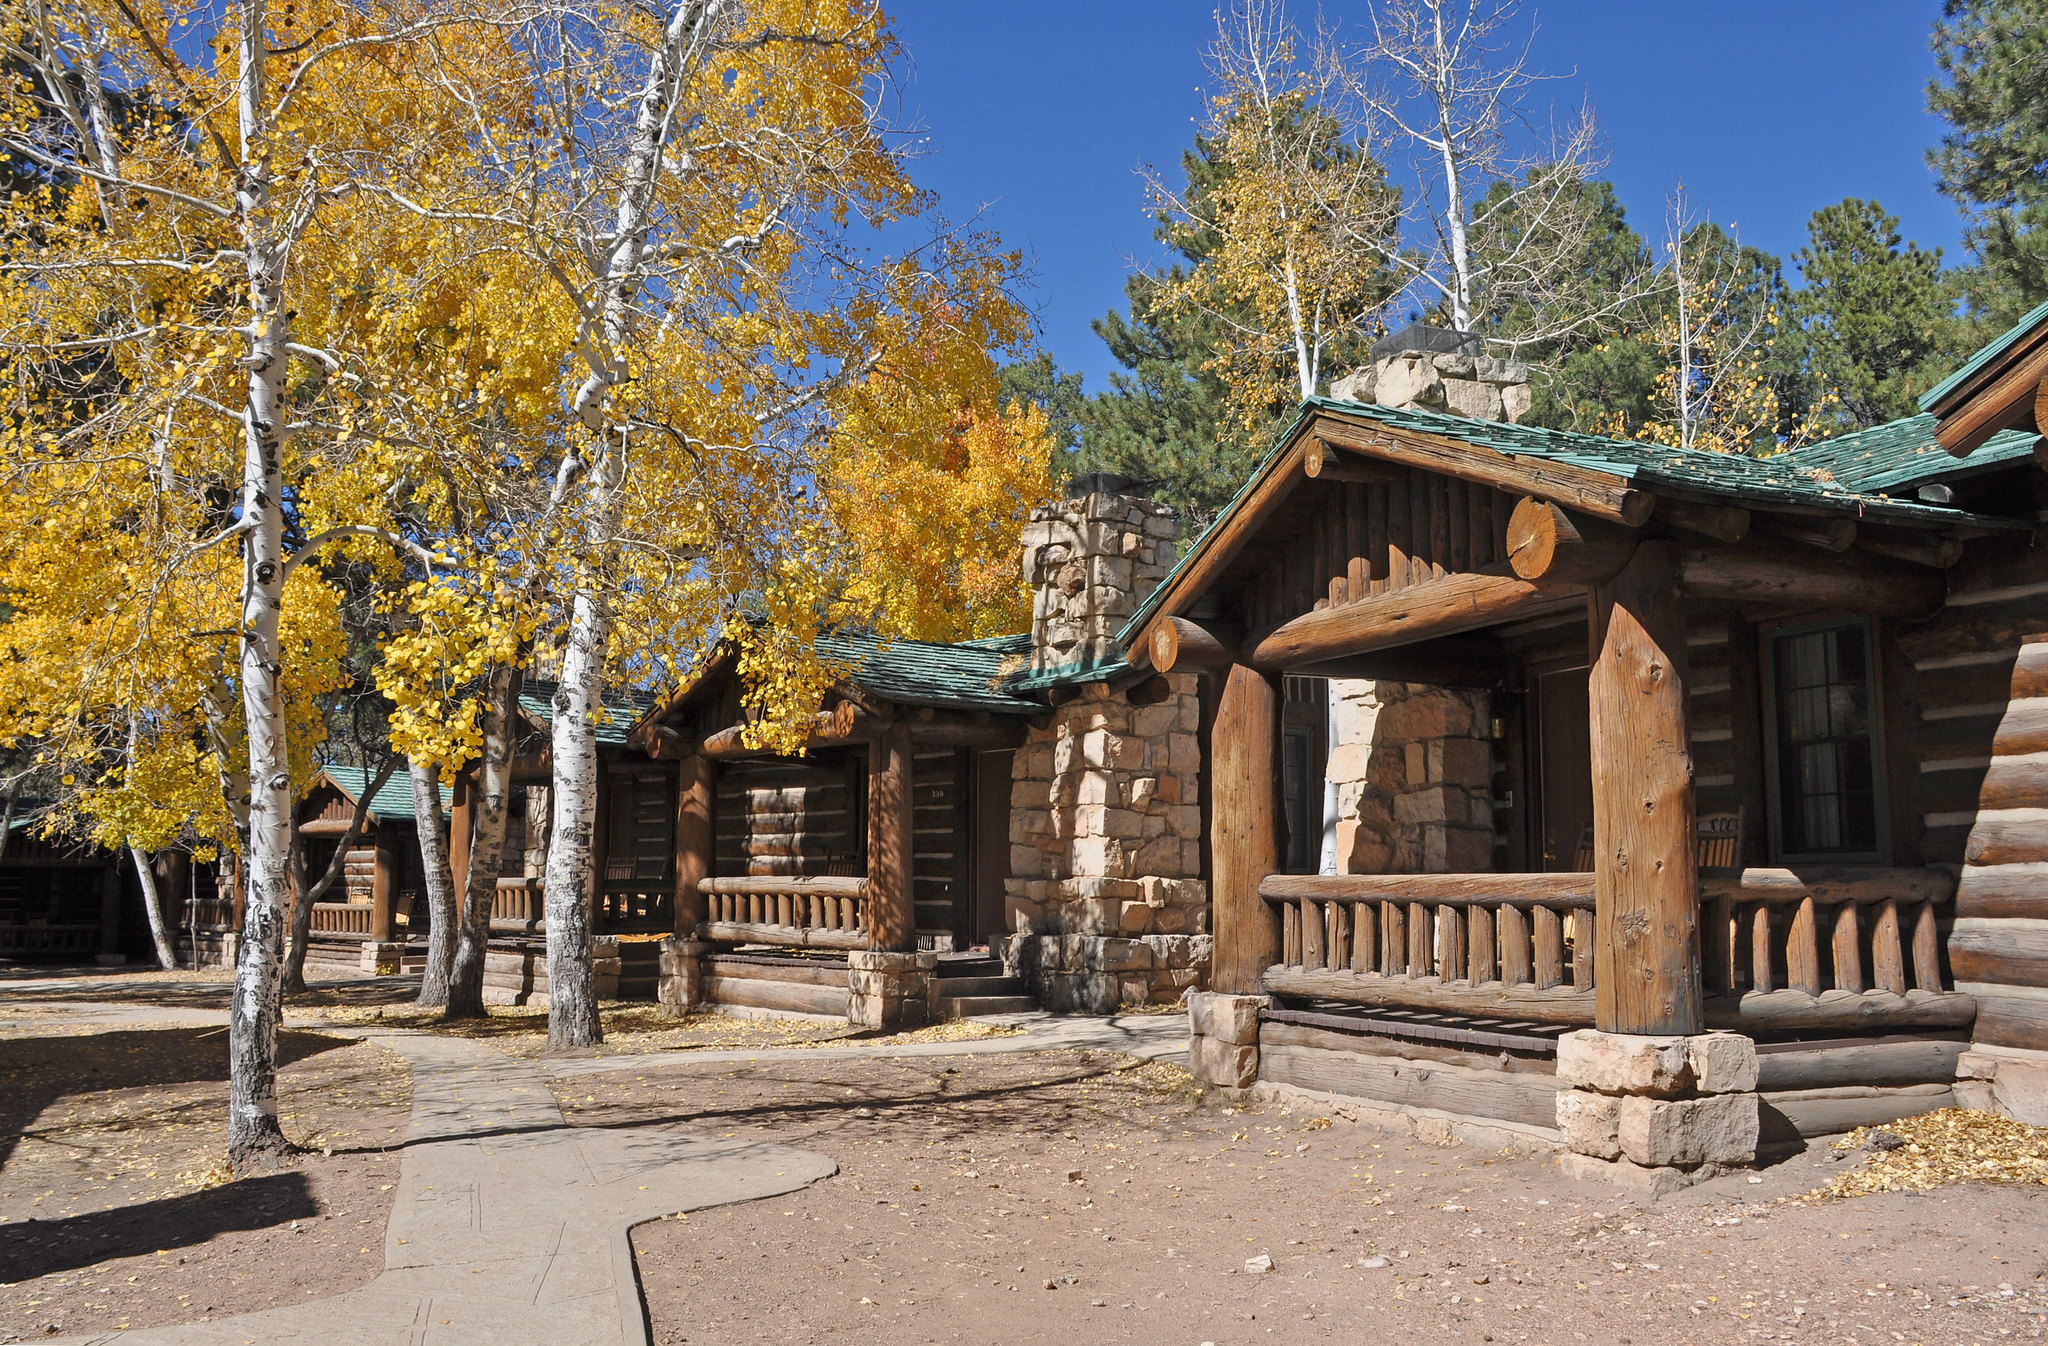 several rustic log and stone lodge buildings surrounded by aspen trees with brilliant yellow leaves.